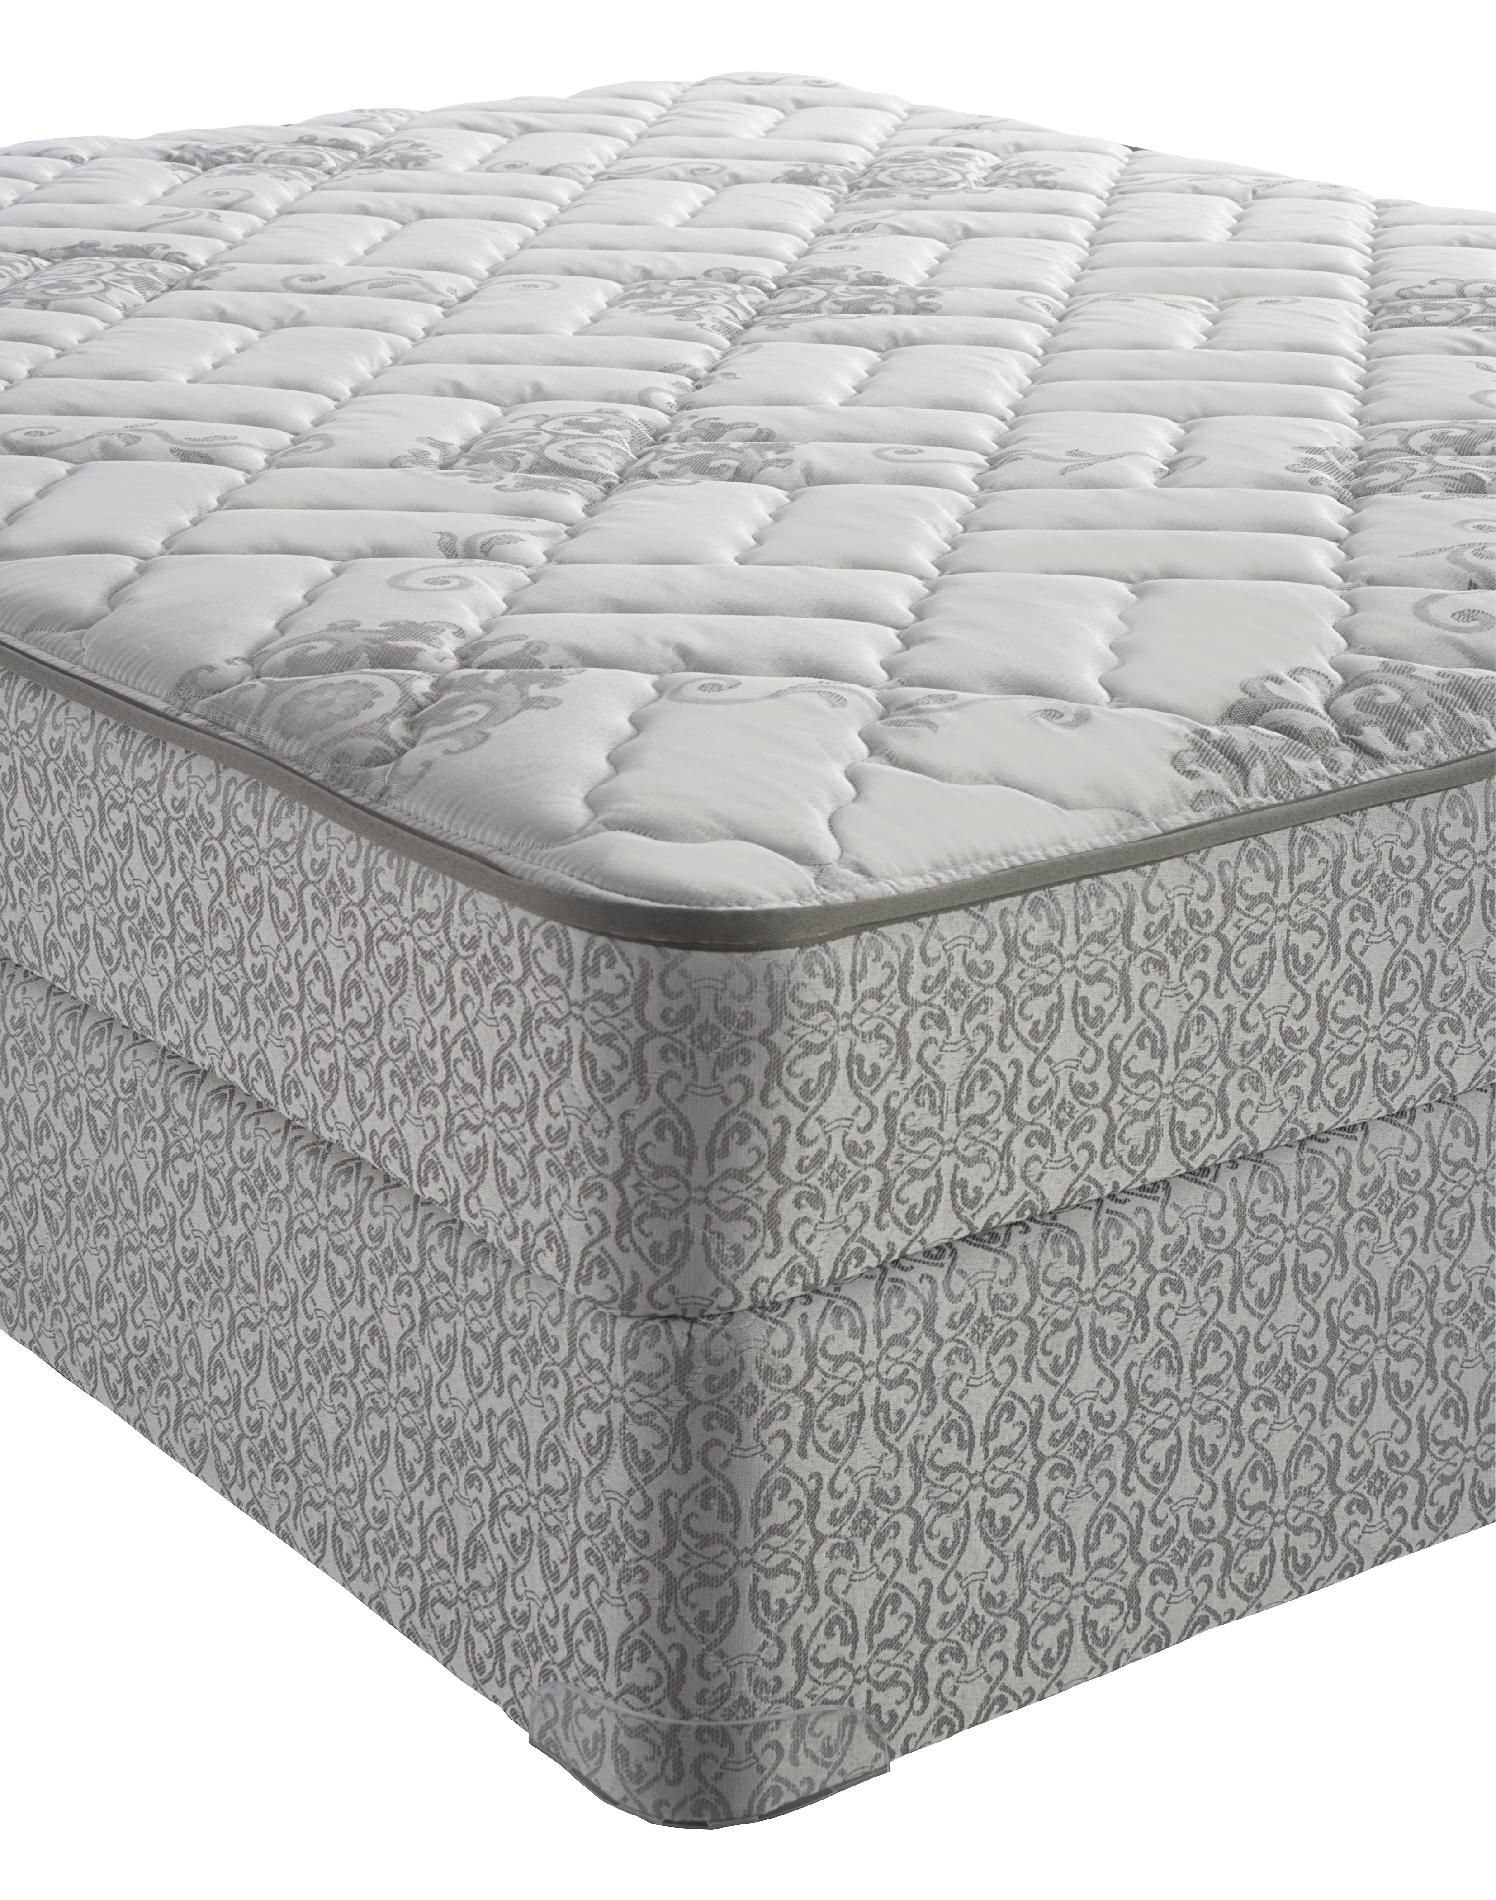 Lawndale-Select-Firm-Cal-King-Mattress-Only